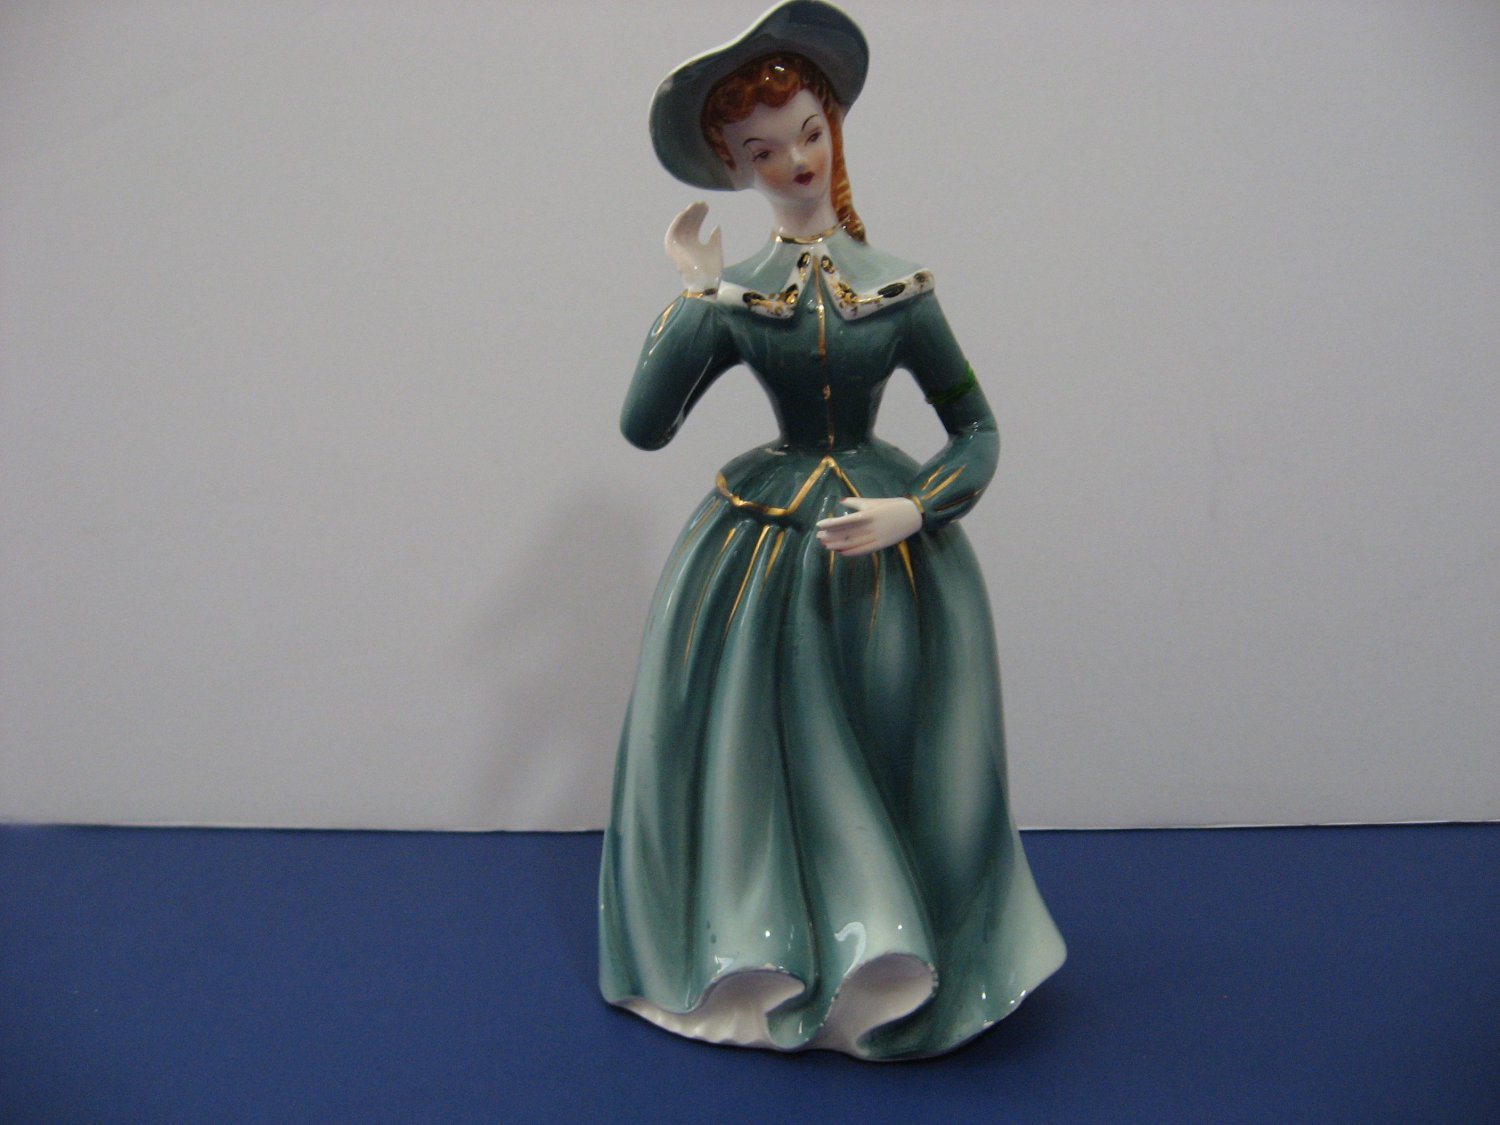 Vintage 1940's Southern Girl In Green Dress with Hat! - By Grantcrest - Hand Painted - Made in Japan